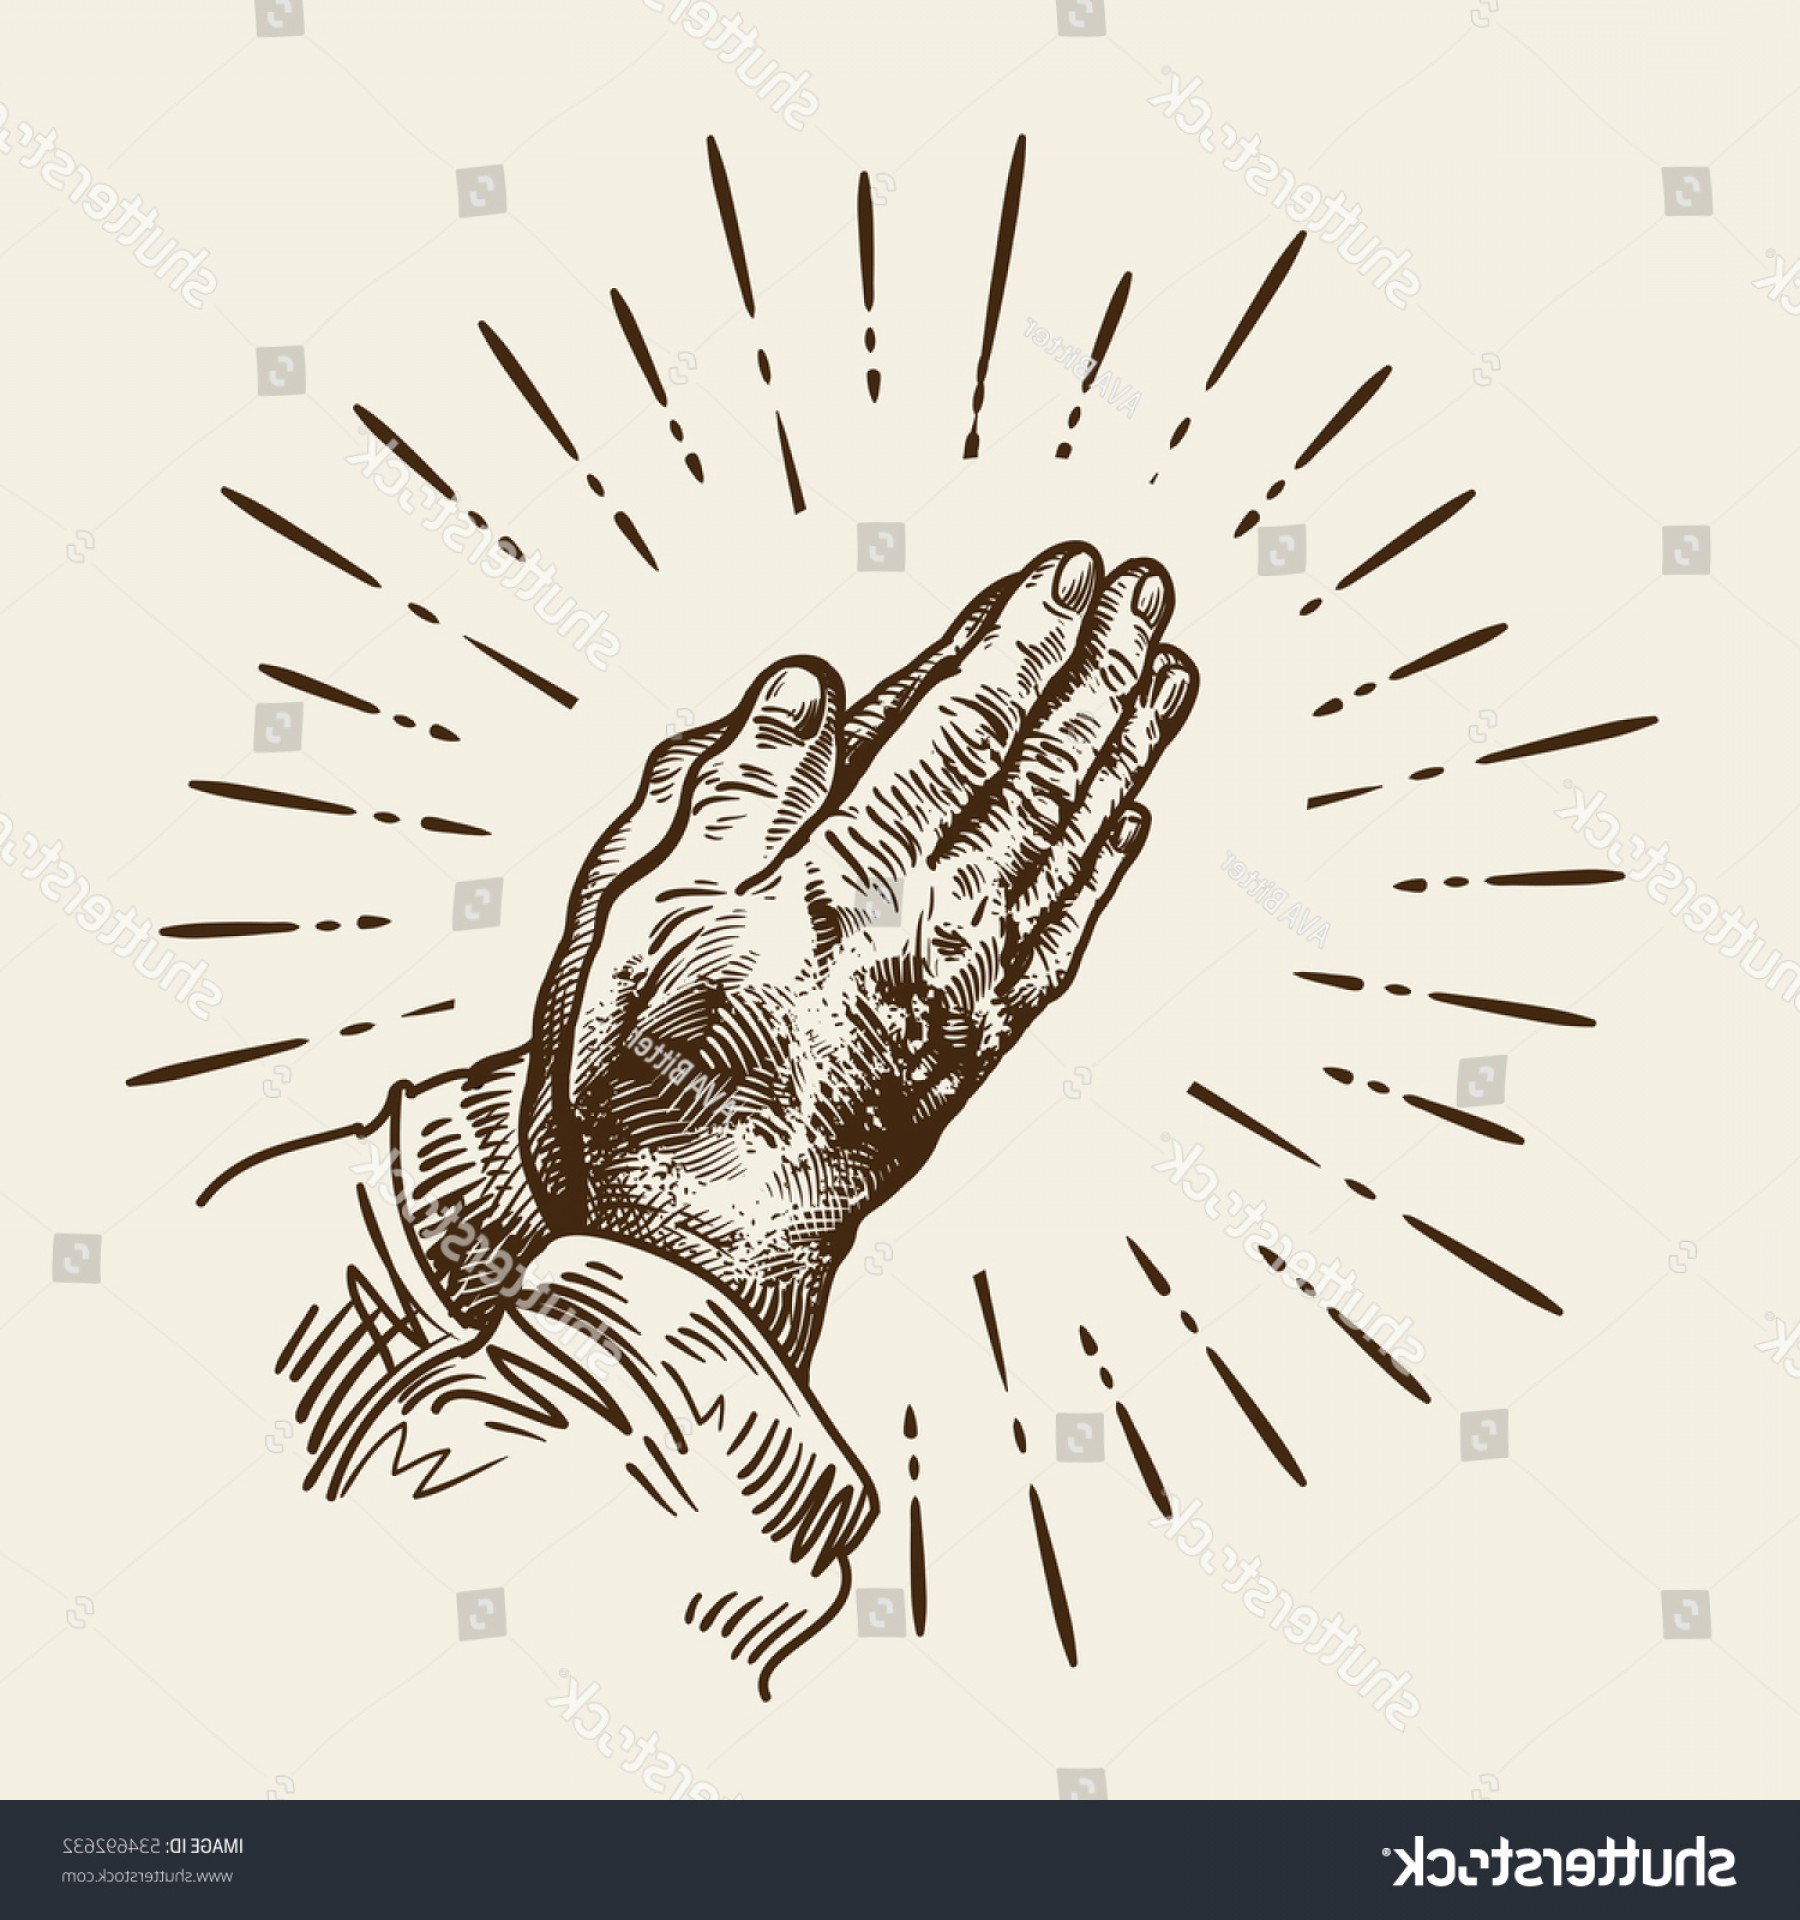 Praying Hands Vectors Shutterstock: Handdrawn Praying Hands Sketch Vector Illustration